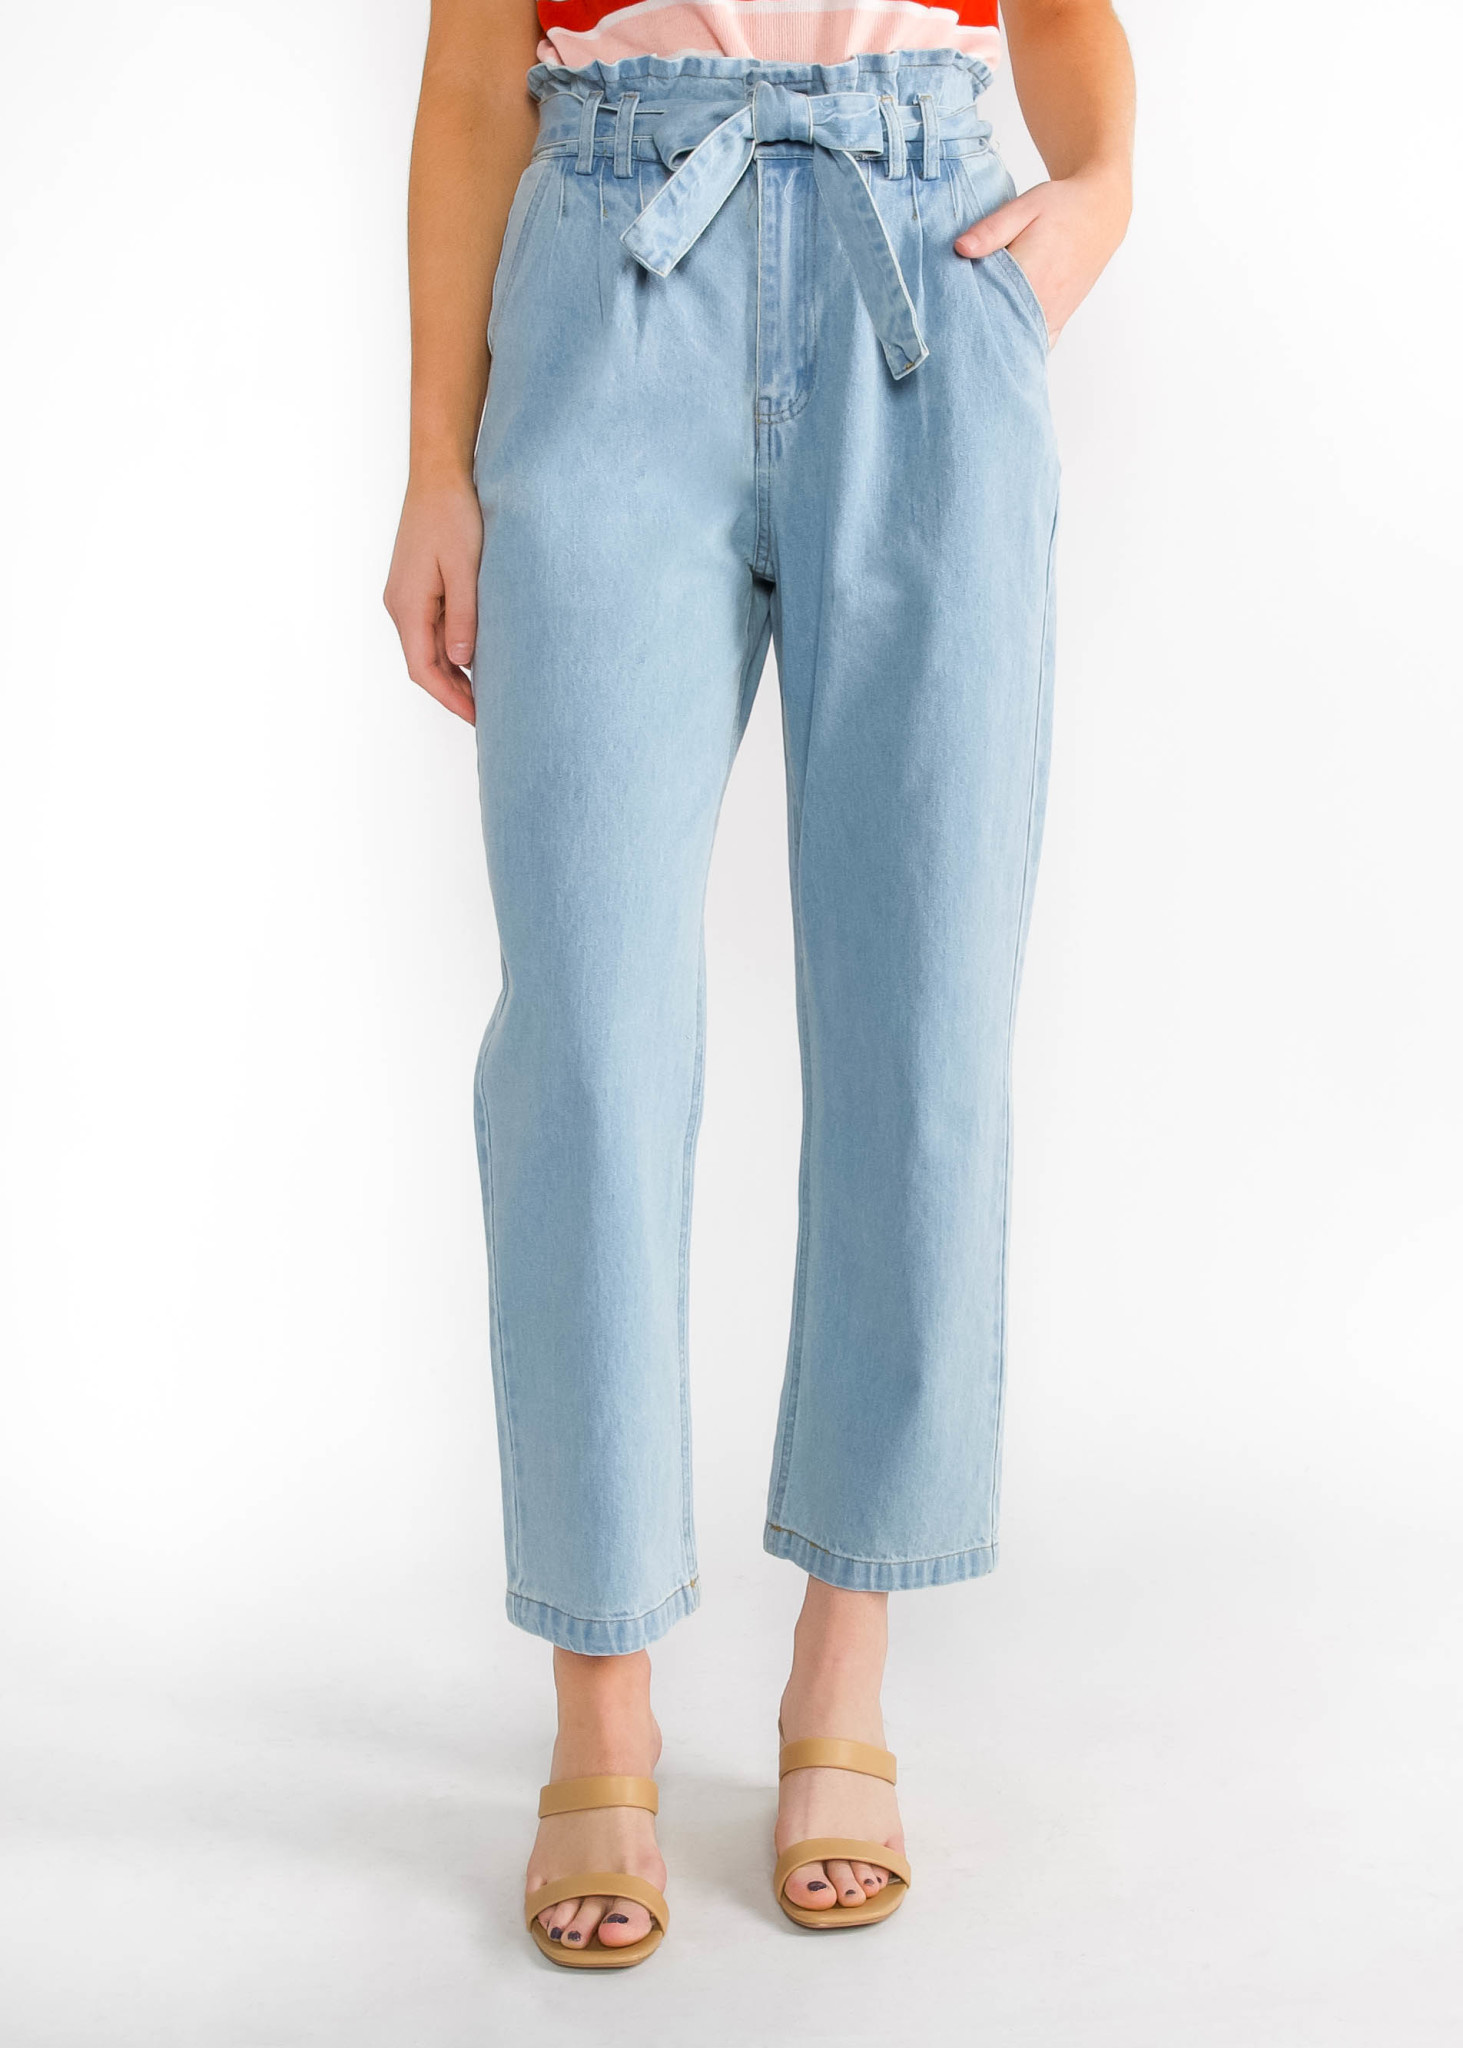 CENTER STAGE WAIST TIE JEANS